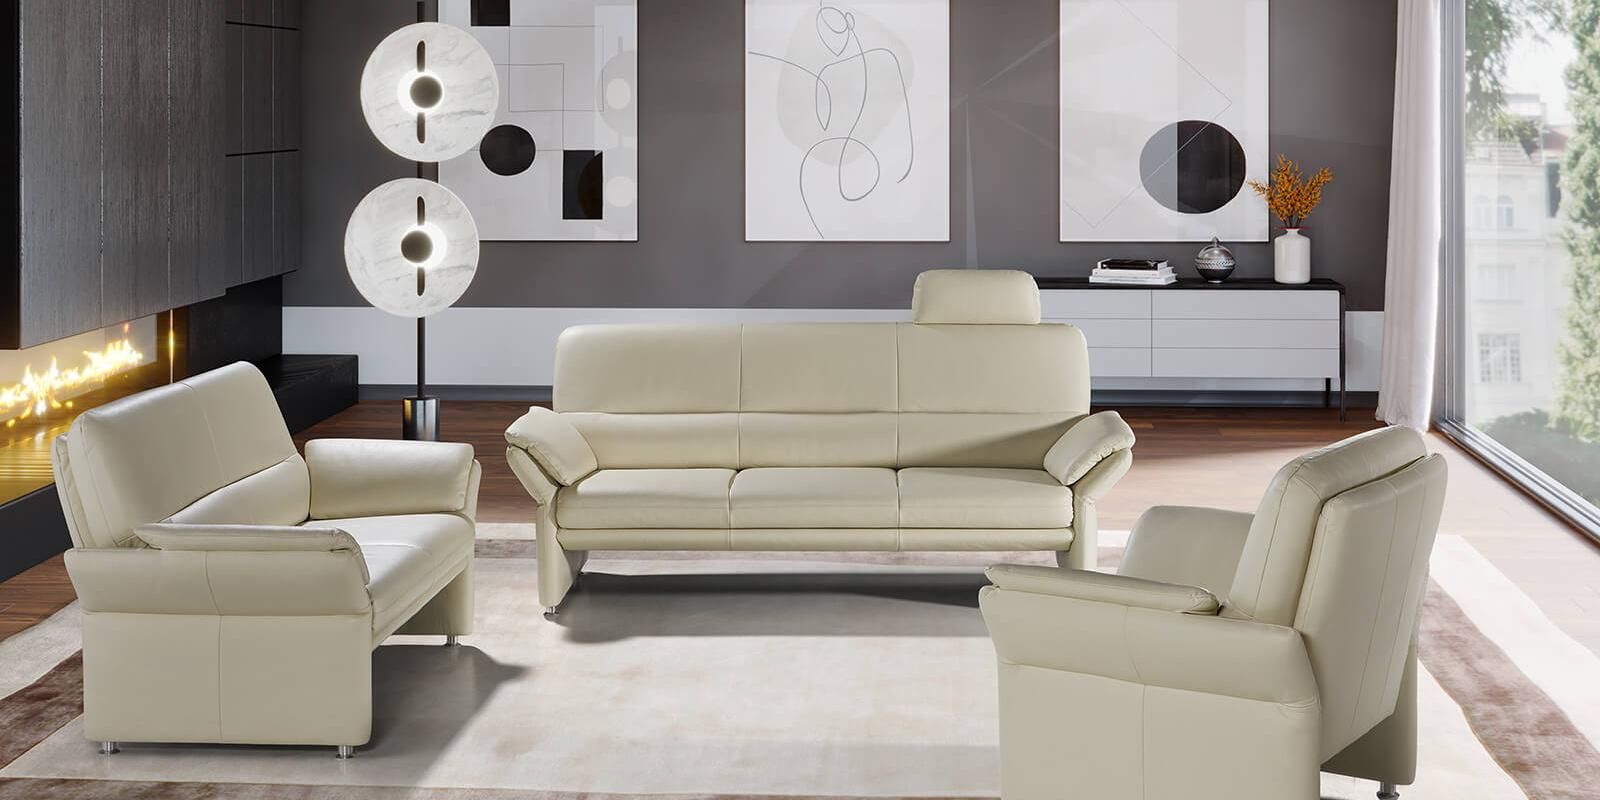 horst collection grimsel sofa design moebel beige leder